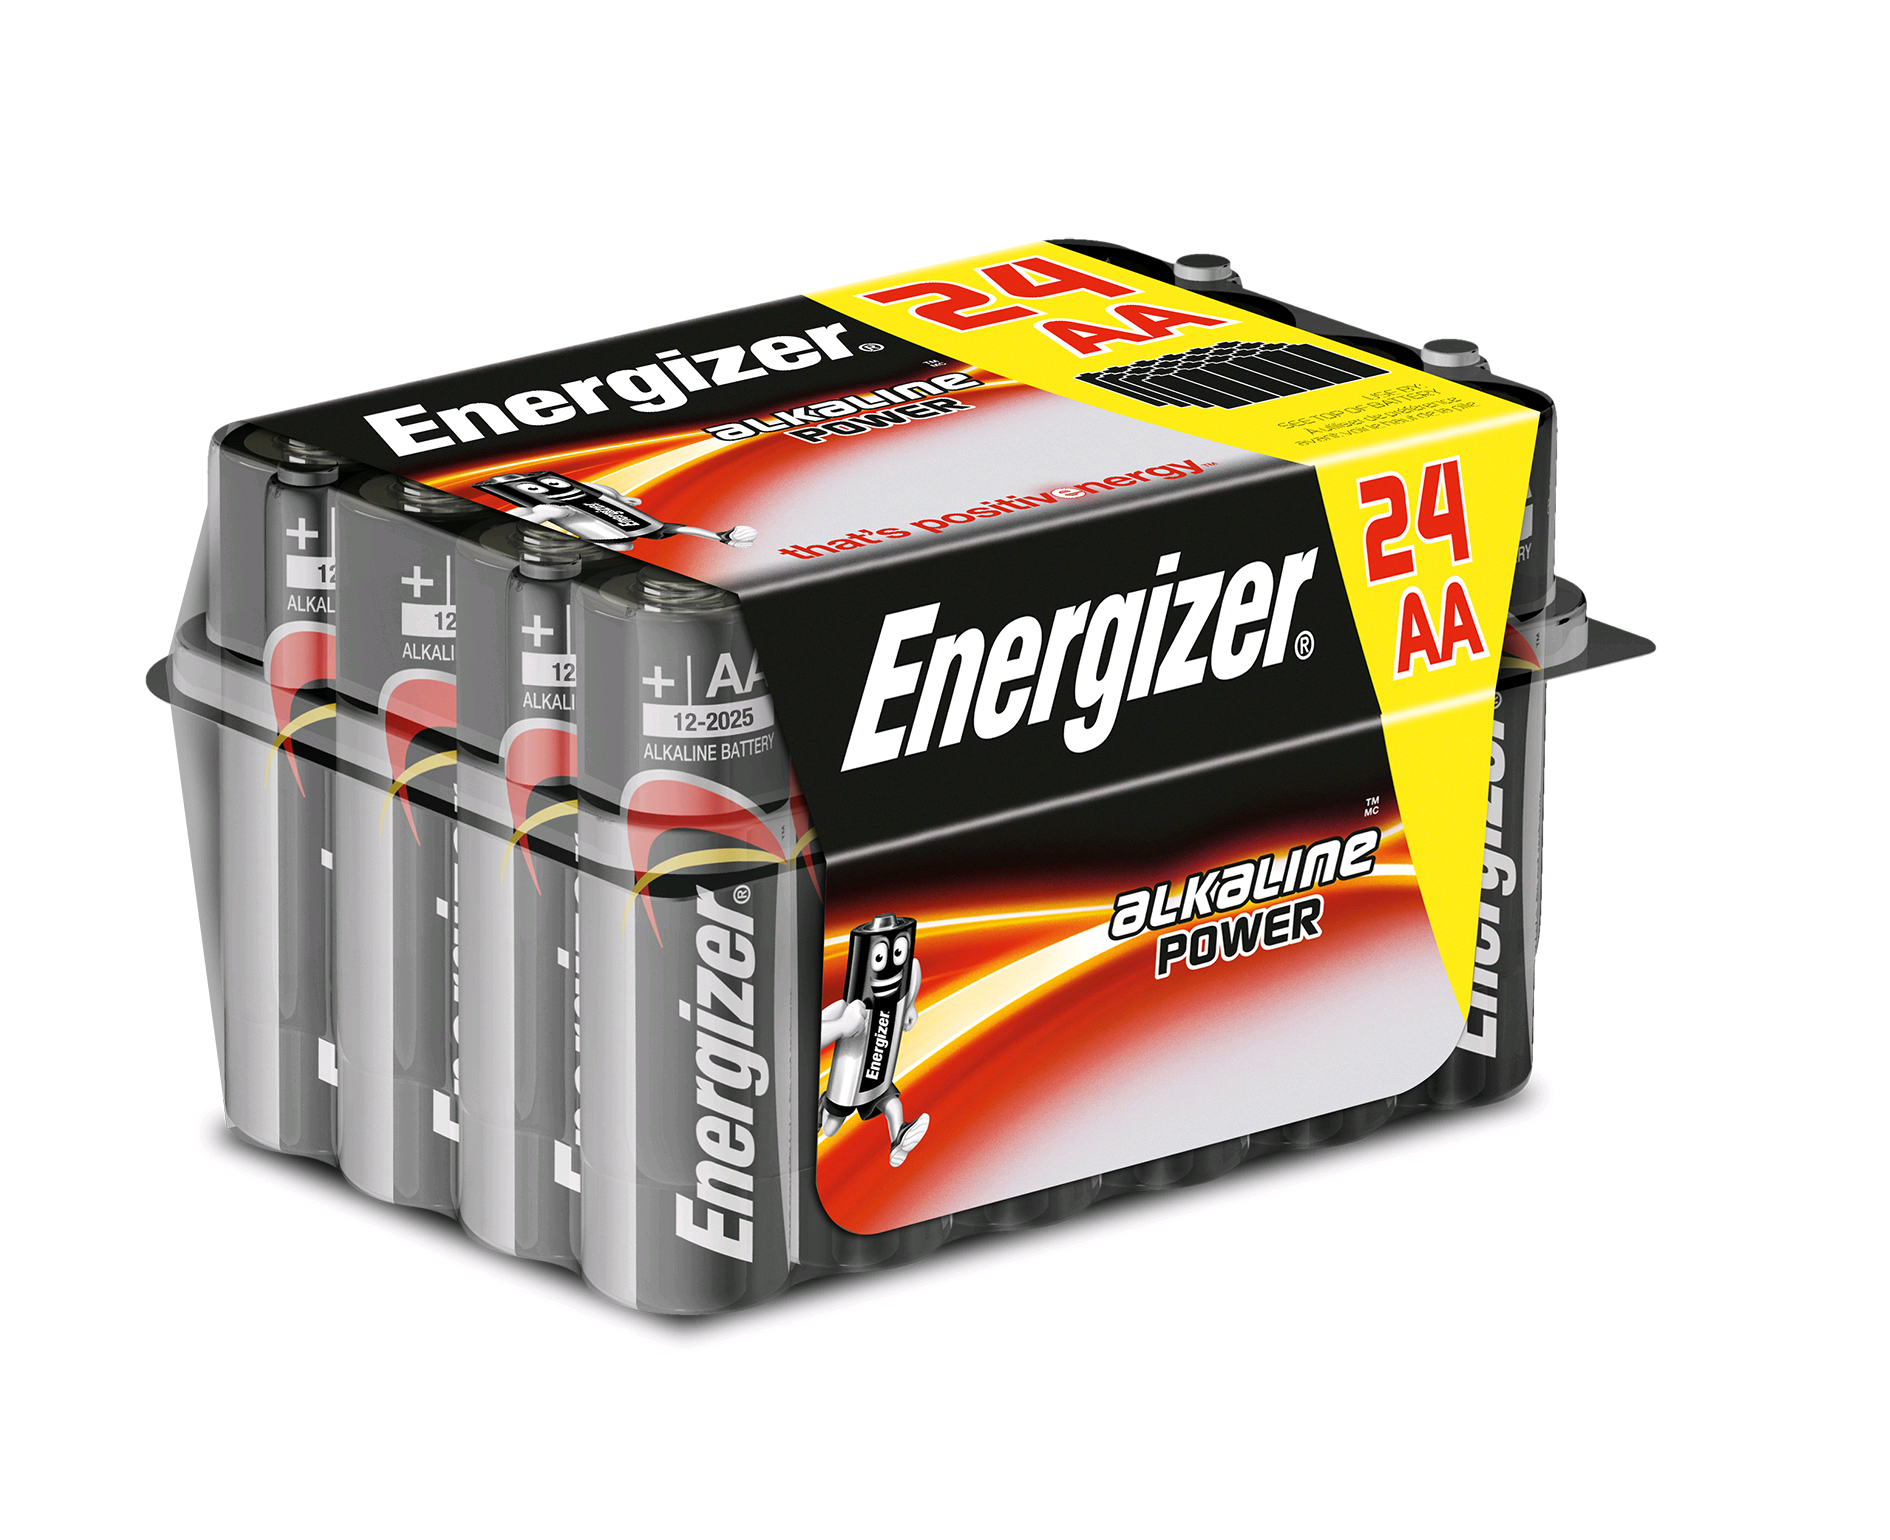 Energizer S10049 AA Battery 24 Pack